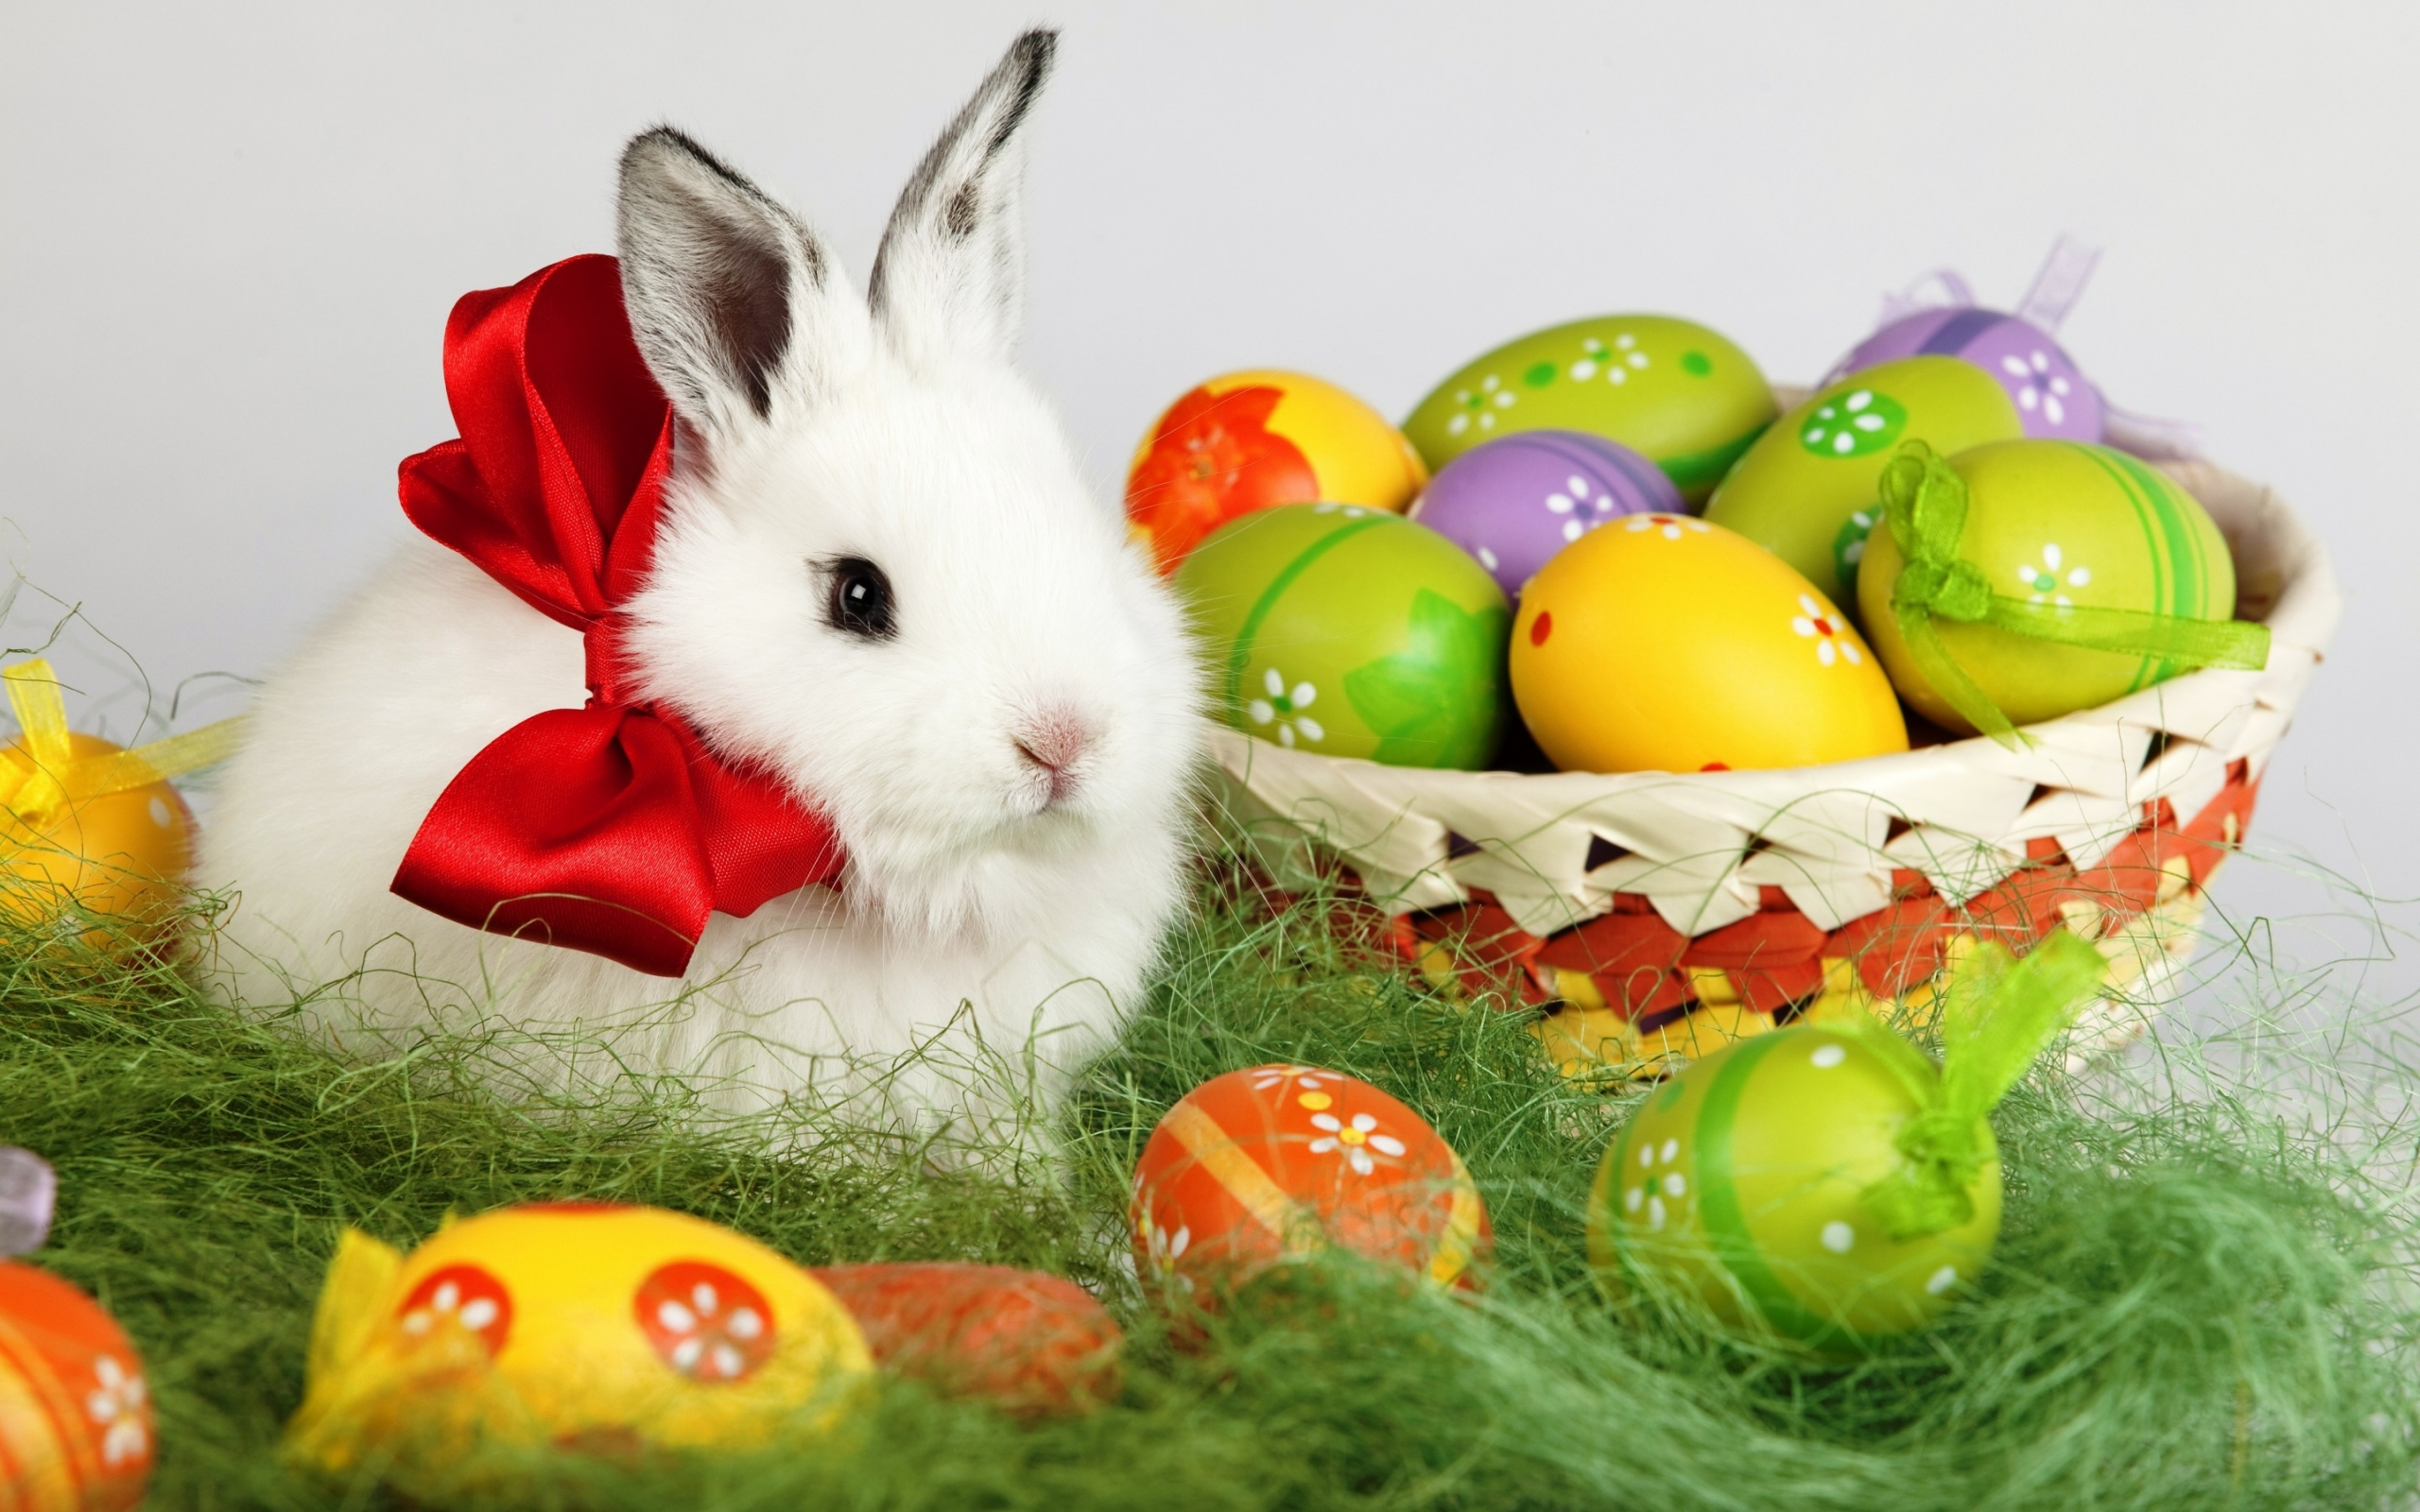 35131 download wallpaper Animals, Rabbits screensavers and pictures for free